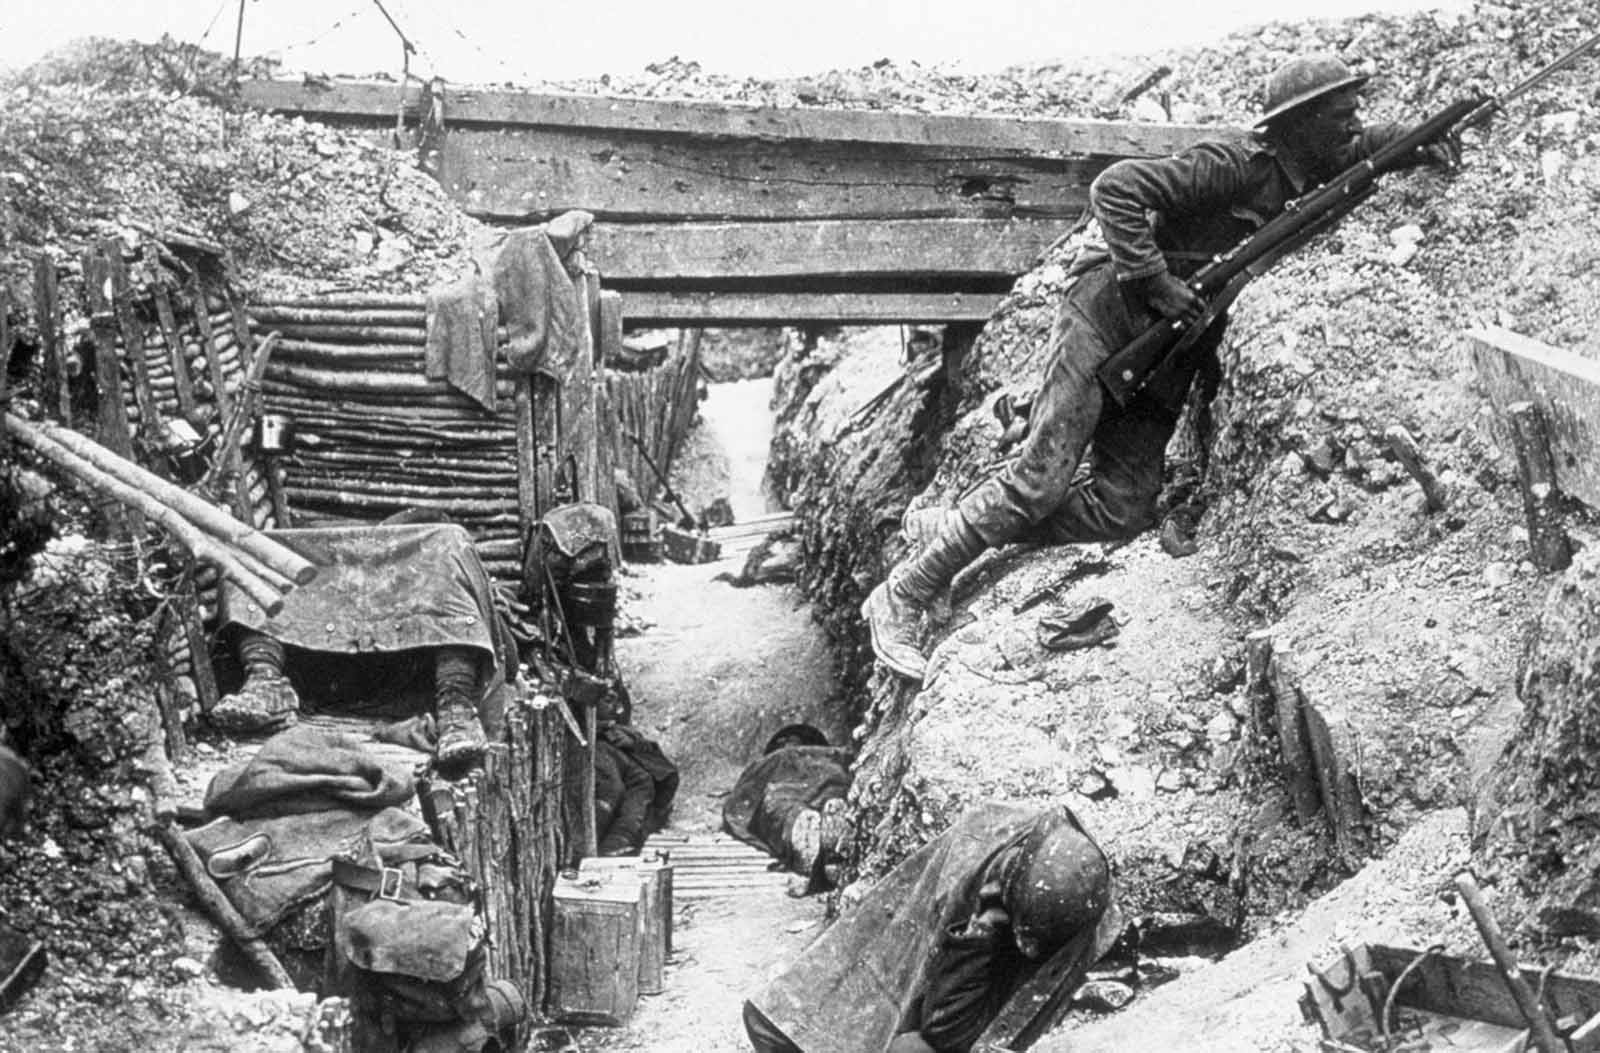 The British trenches, manned by the 11th battalion, The Cheshire Regiment, near La Boisselle.